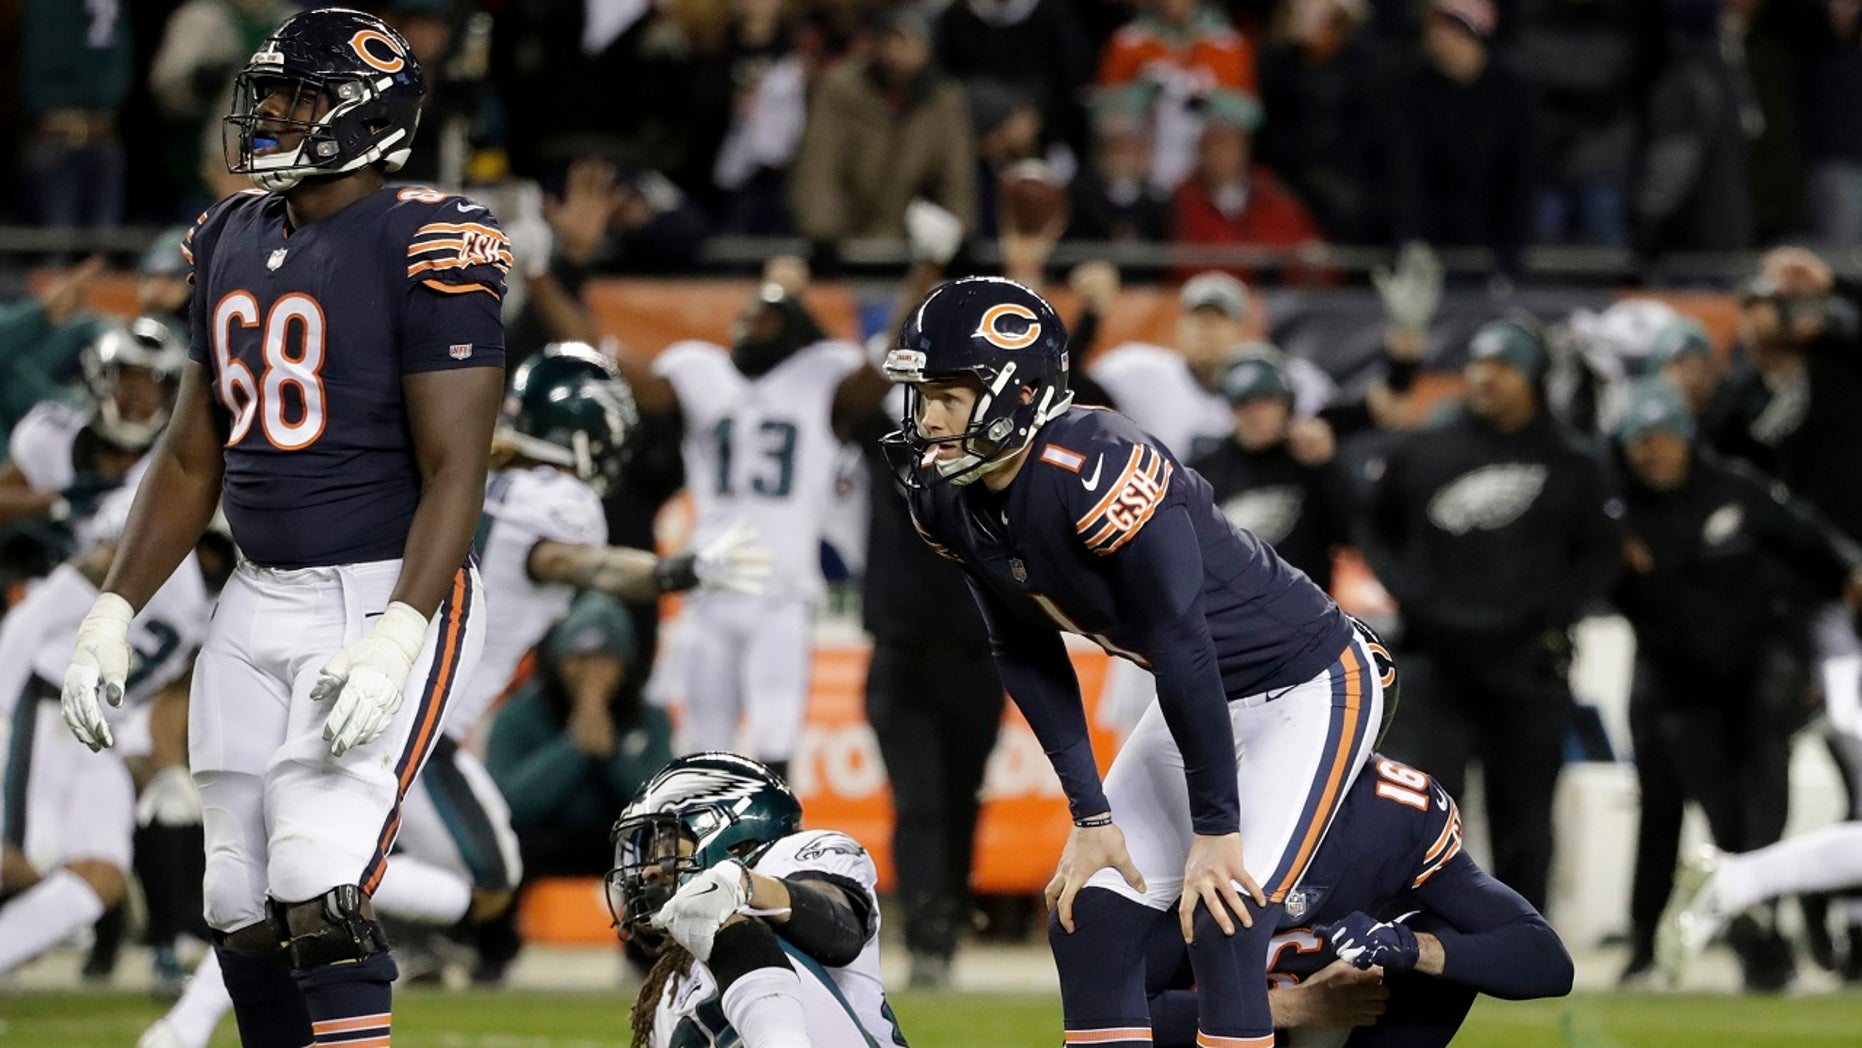 """Chicago Bear's kicker Cody Parkey (1) responds after missing out on a field goal at the end of the team's NFL wild loss playoff loss to the Philadelphia Eagles in Chicago on January 6, 201<div class=""""e3lan e3lan-in-post1""""><script async src=""""//pagead2.googlesyndication.com/pagead/js/adsbygoogle.js""""></script> <!-- Text_Image --> <ins class=""""adsbygoogle""""      style=""""display:block""""      data-ad-client=""""ca-pub-6192903739091894""""      data-ad-slot=""""3136787391""""      data-ad-format=""""auto""""      data-full-width-responsive=""""true""""></ins> <script> (adsbygoogle = window.adsbygoogle 